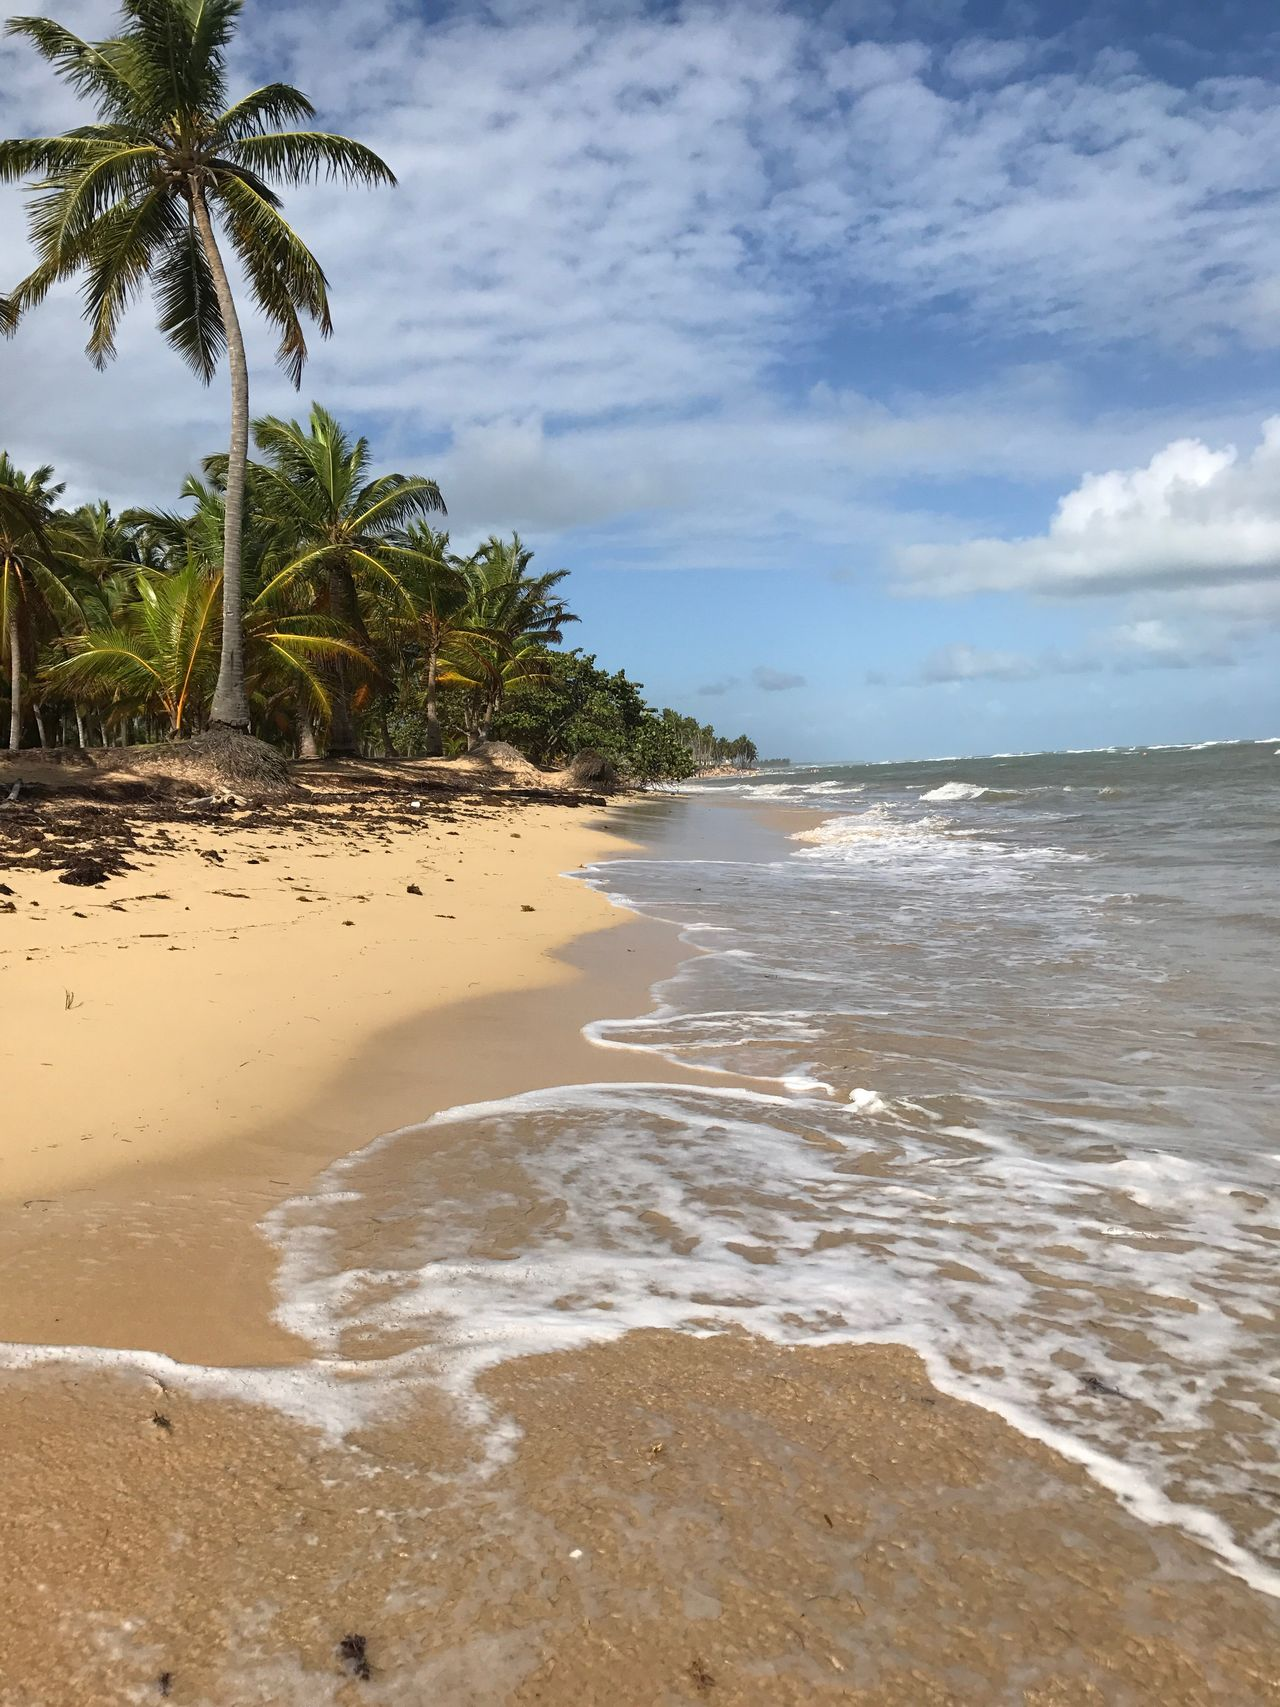 Dominican Republic Dominican Republic Beach Ocean Ocean View Palm Tree Sand Sea Seascape Seaside Scenics Tranquility Cloud - Sky Cloud